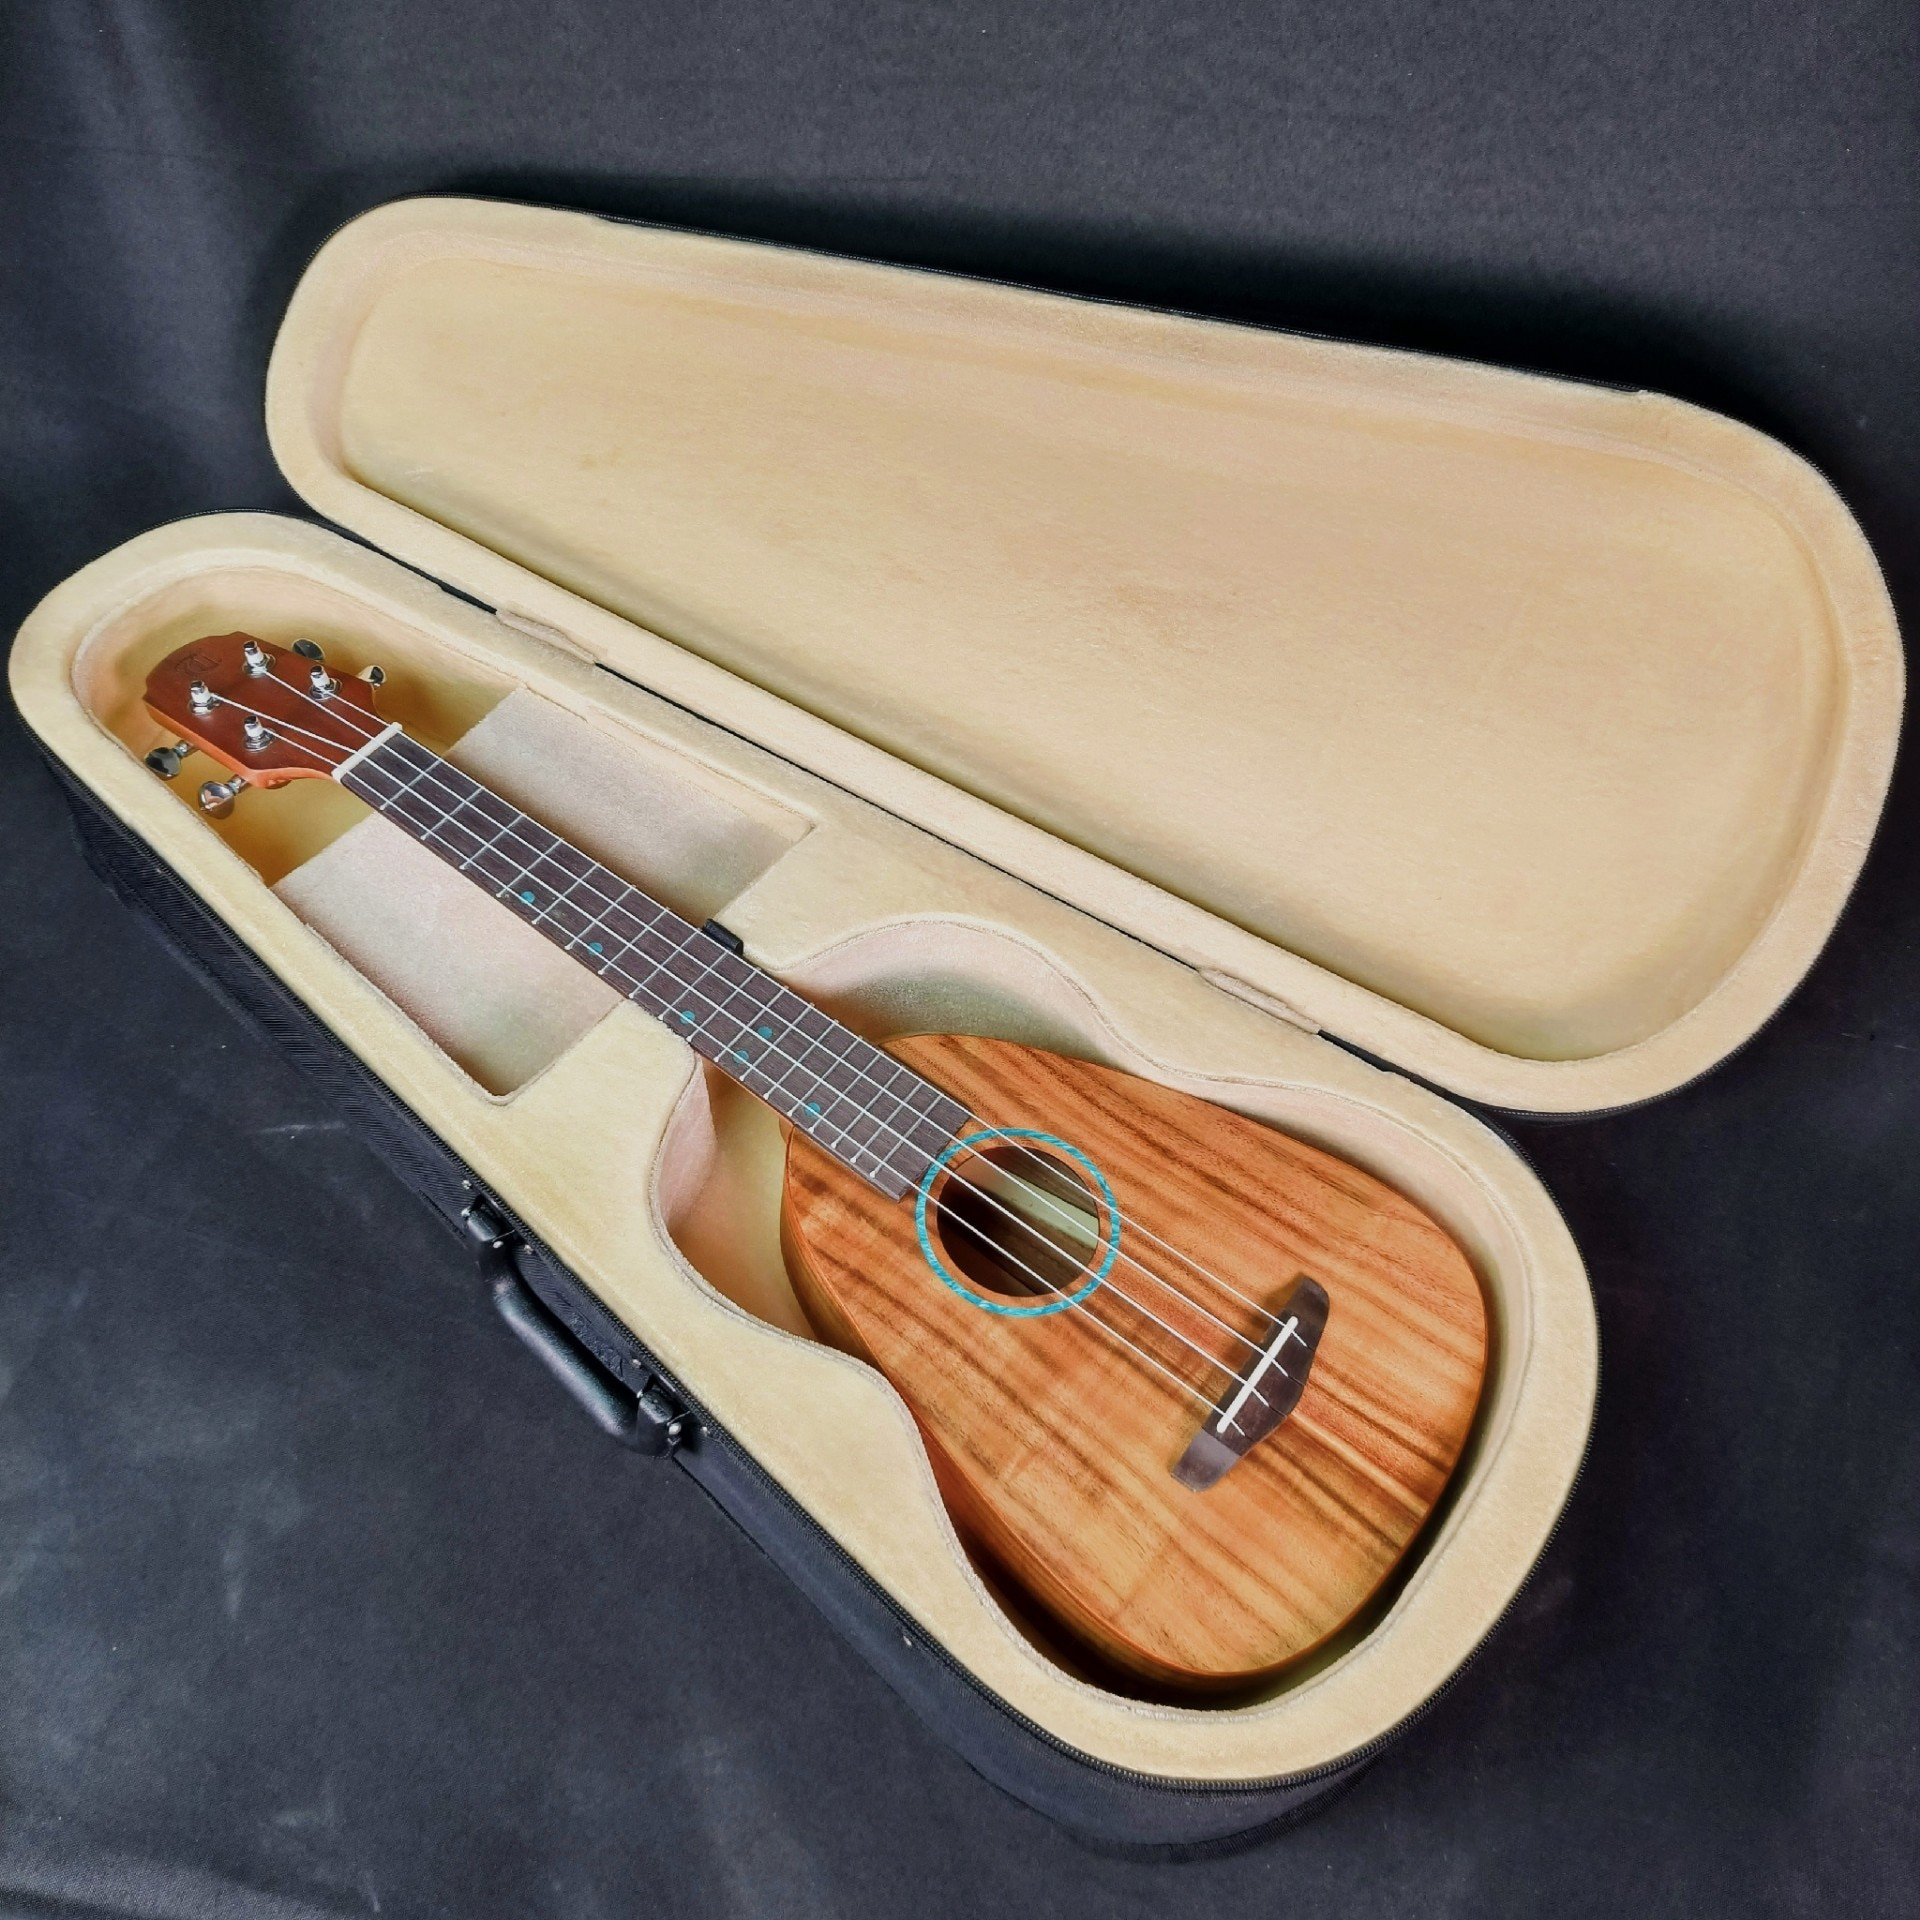 Tenor Ukulele with Hard Case Body Jazz Classical Sports Small Guitar Olid Wood 26 Inch Pineapple Guitarra Entertainment ZZ50YL enlarge